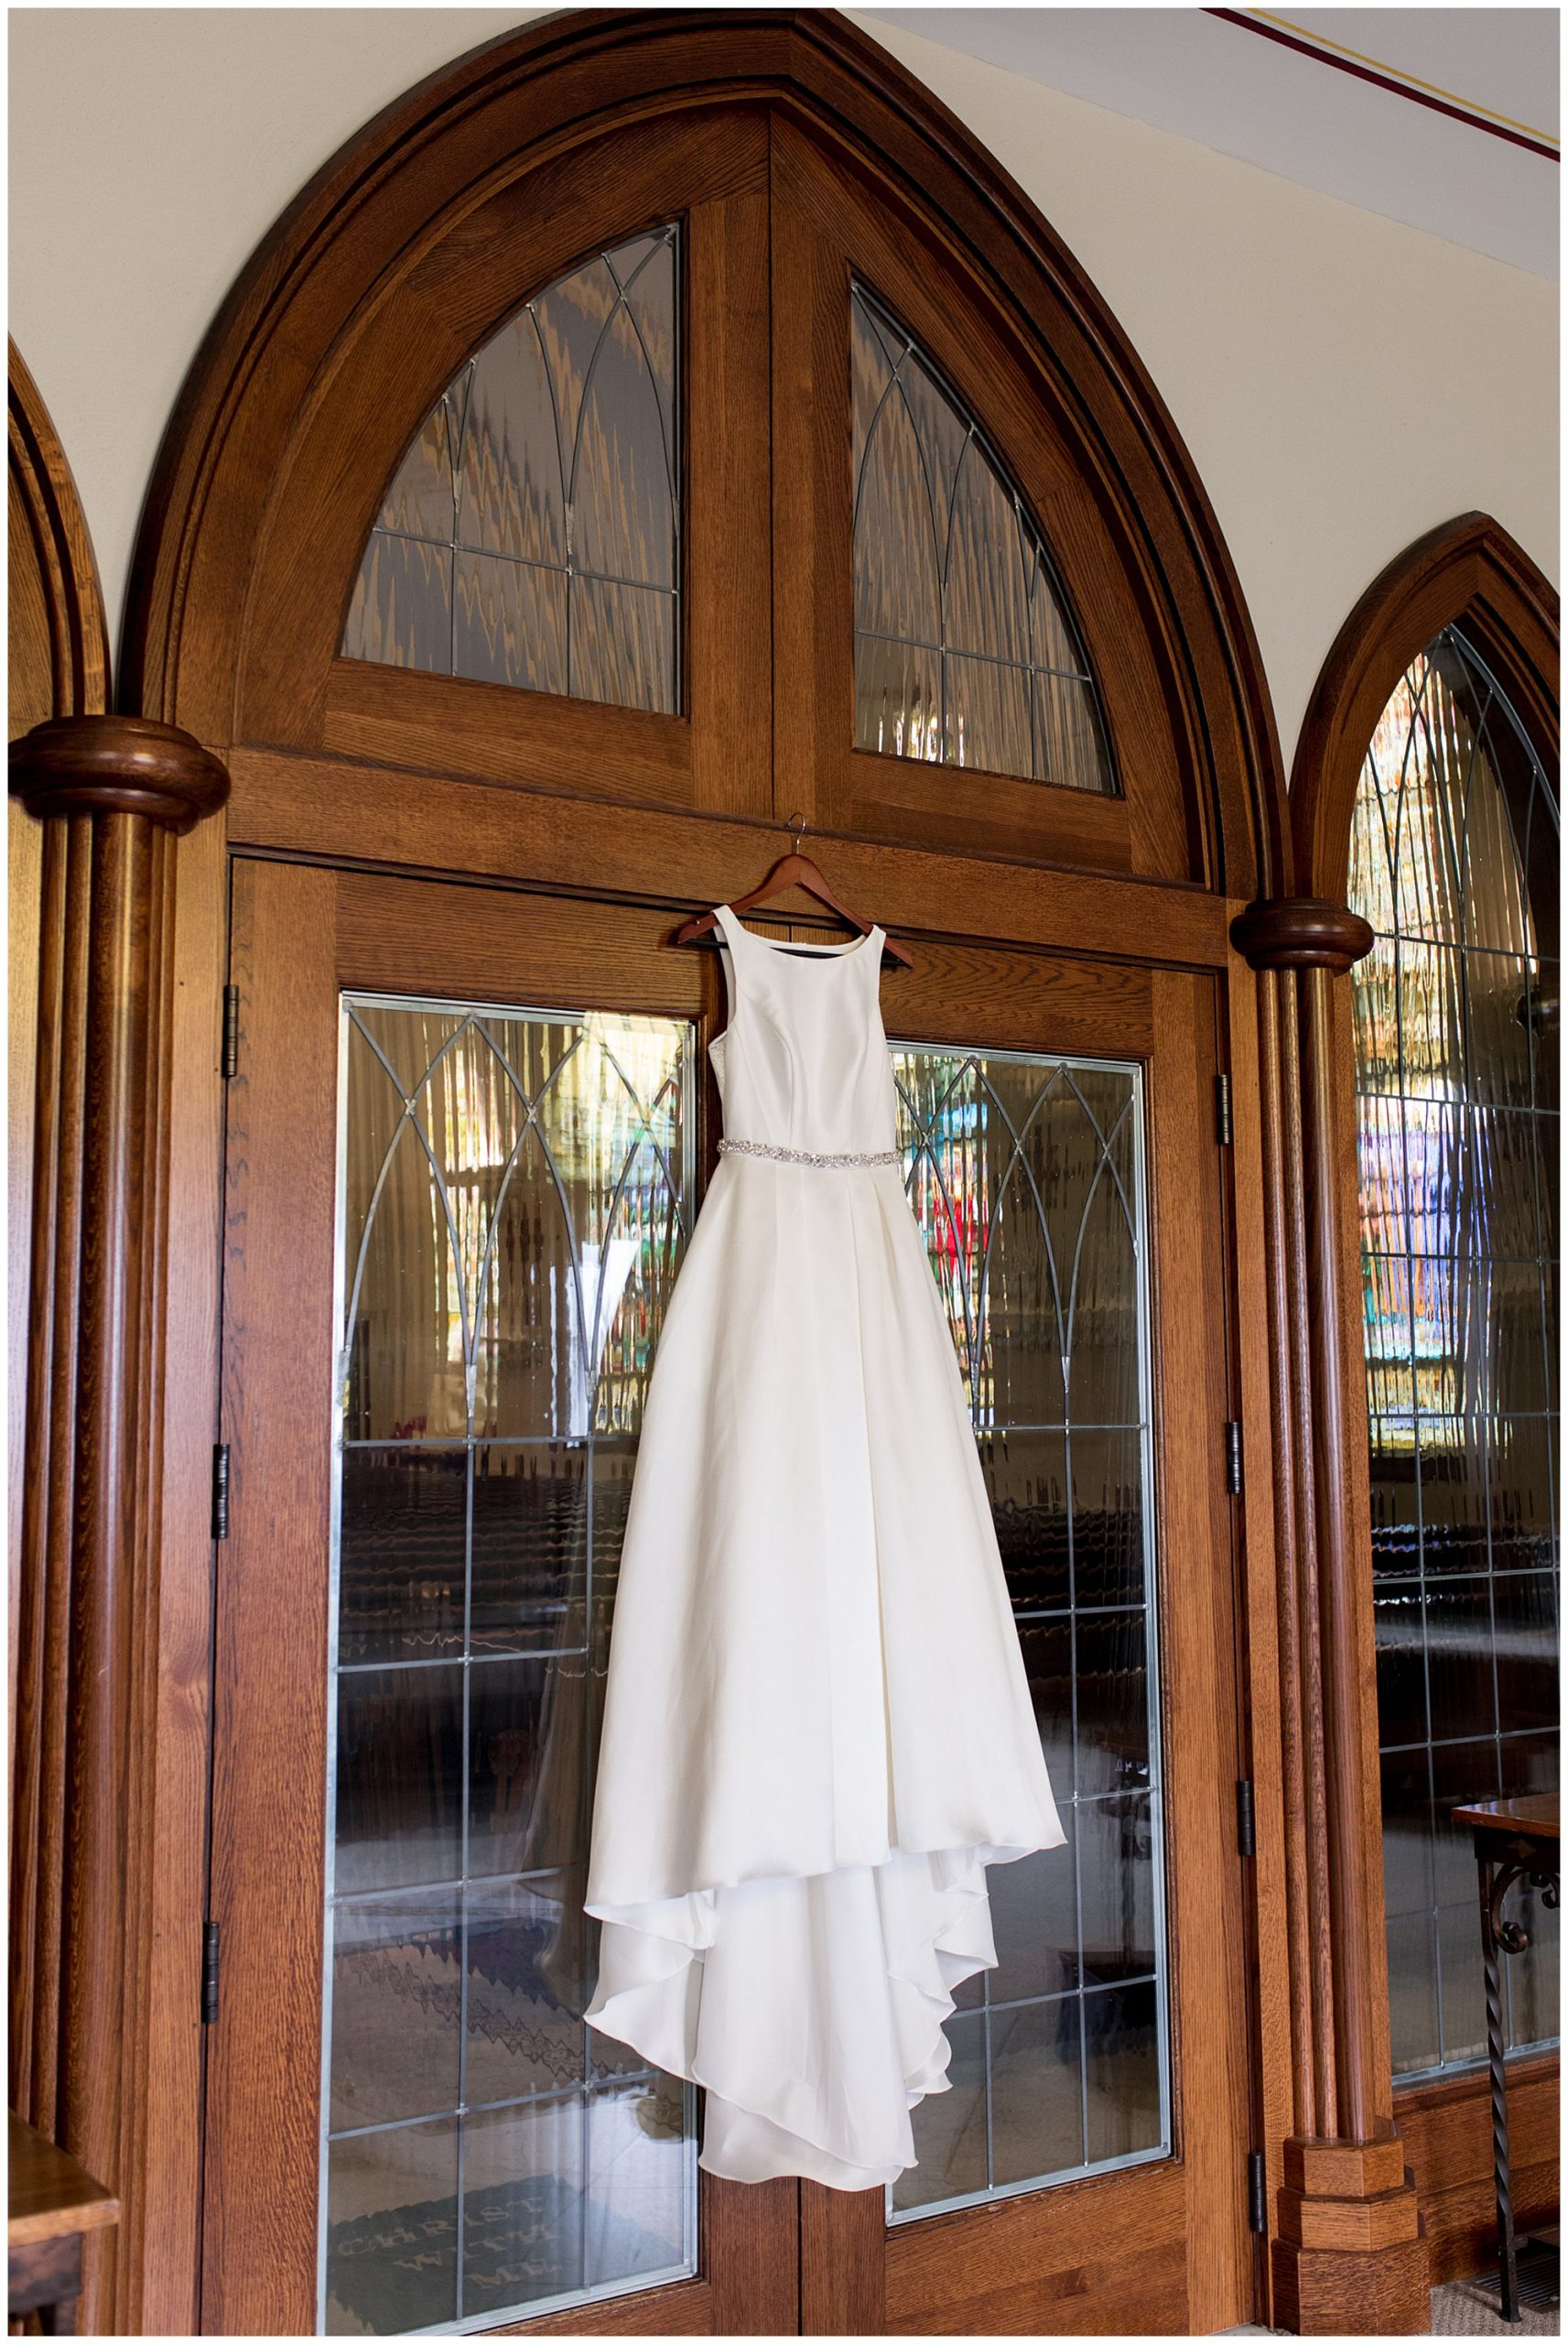 bride's dress hanging from doors to sanctuary at St. Patrick Church in Kokomo Indiana